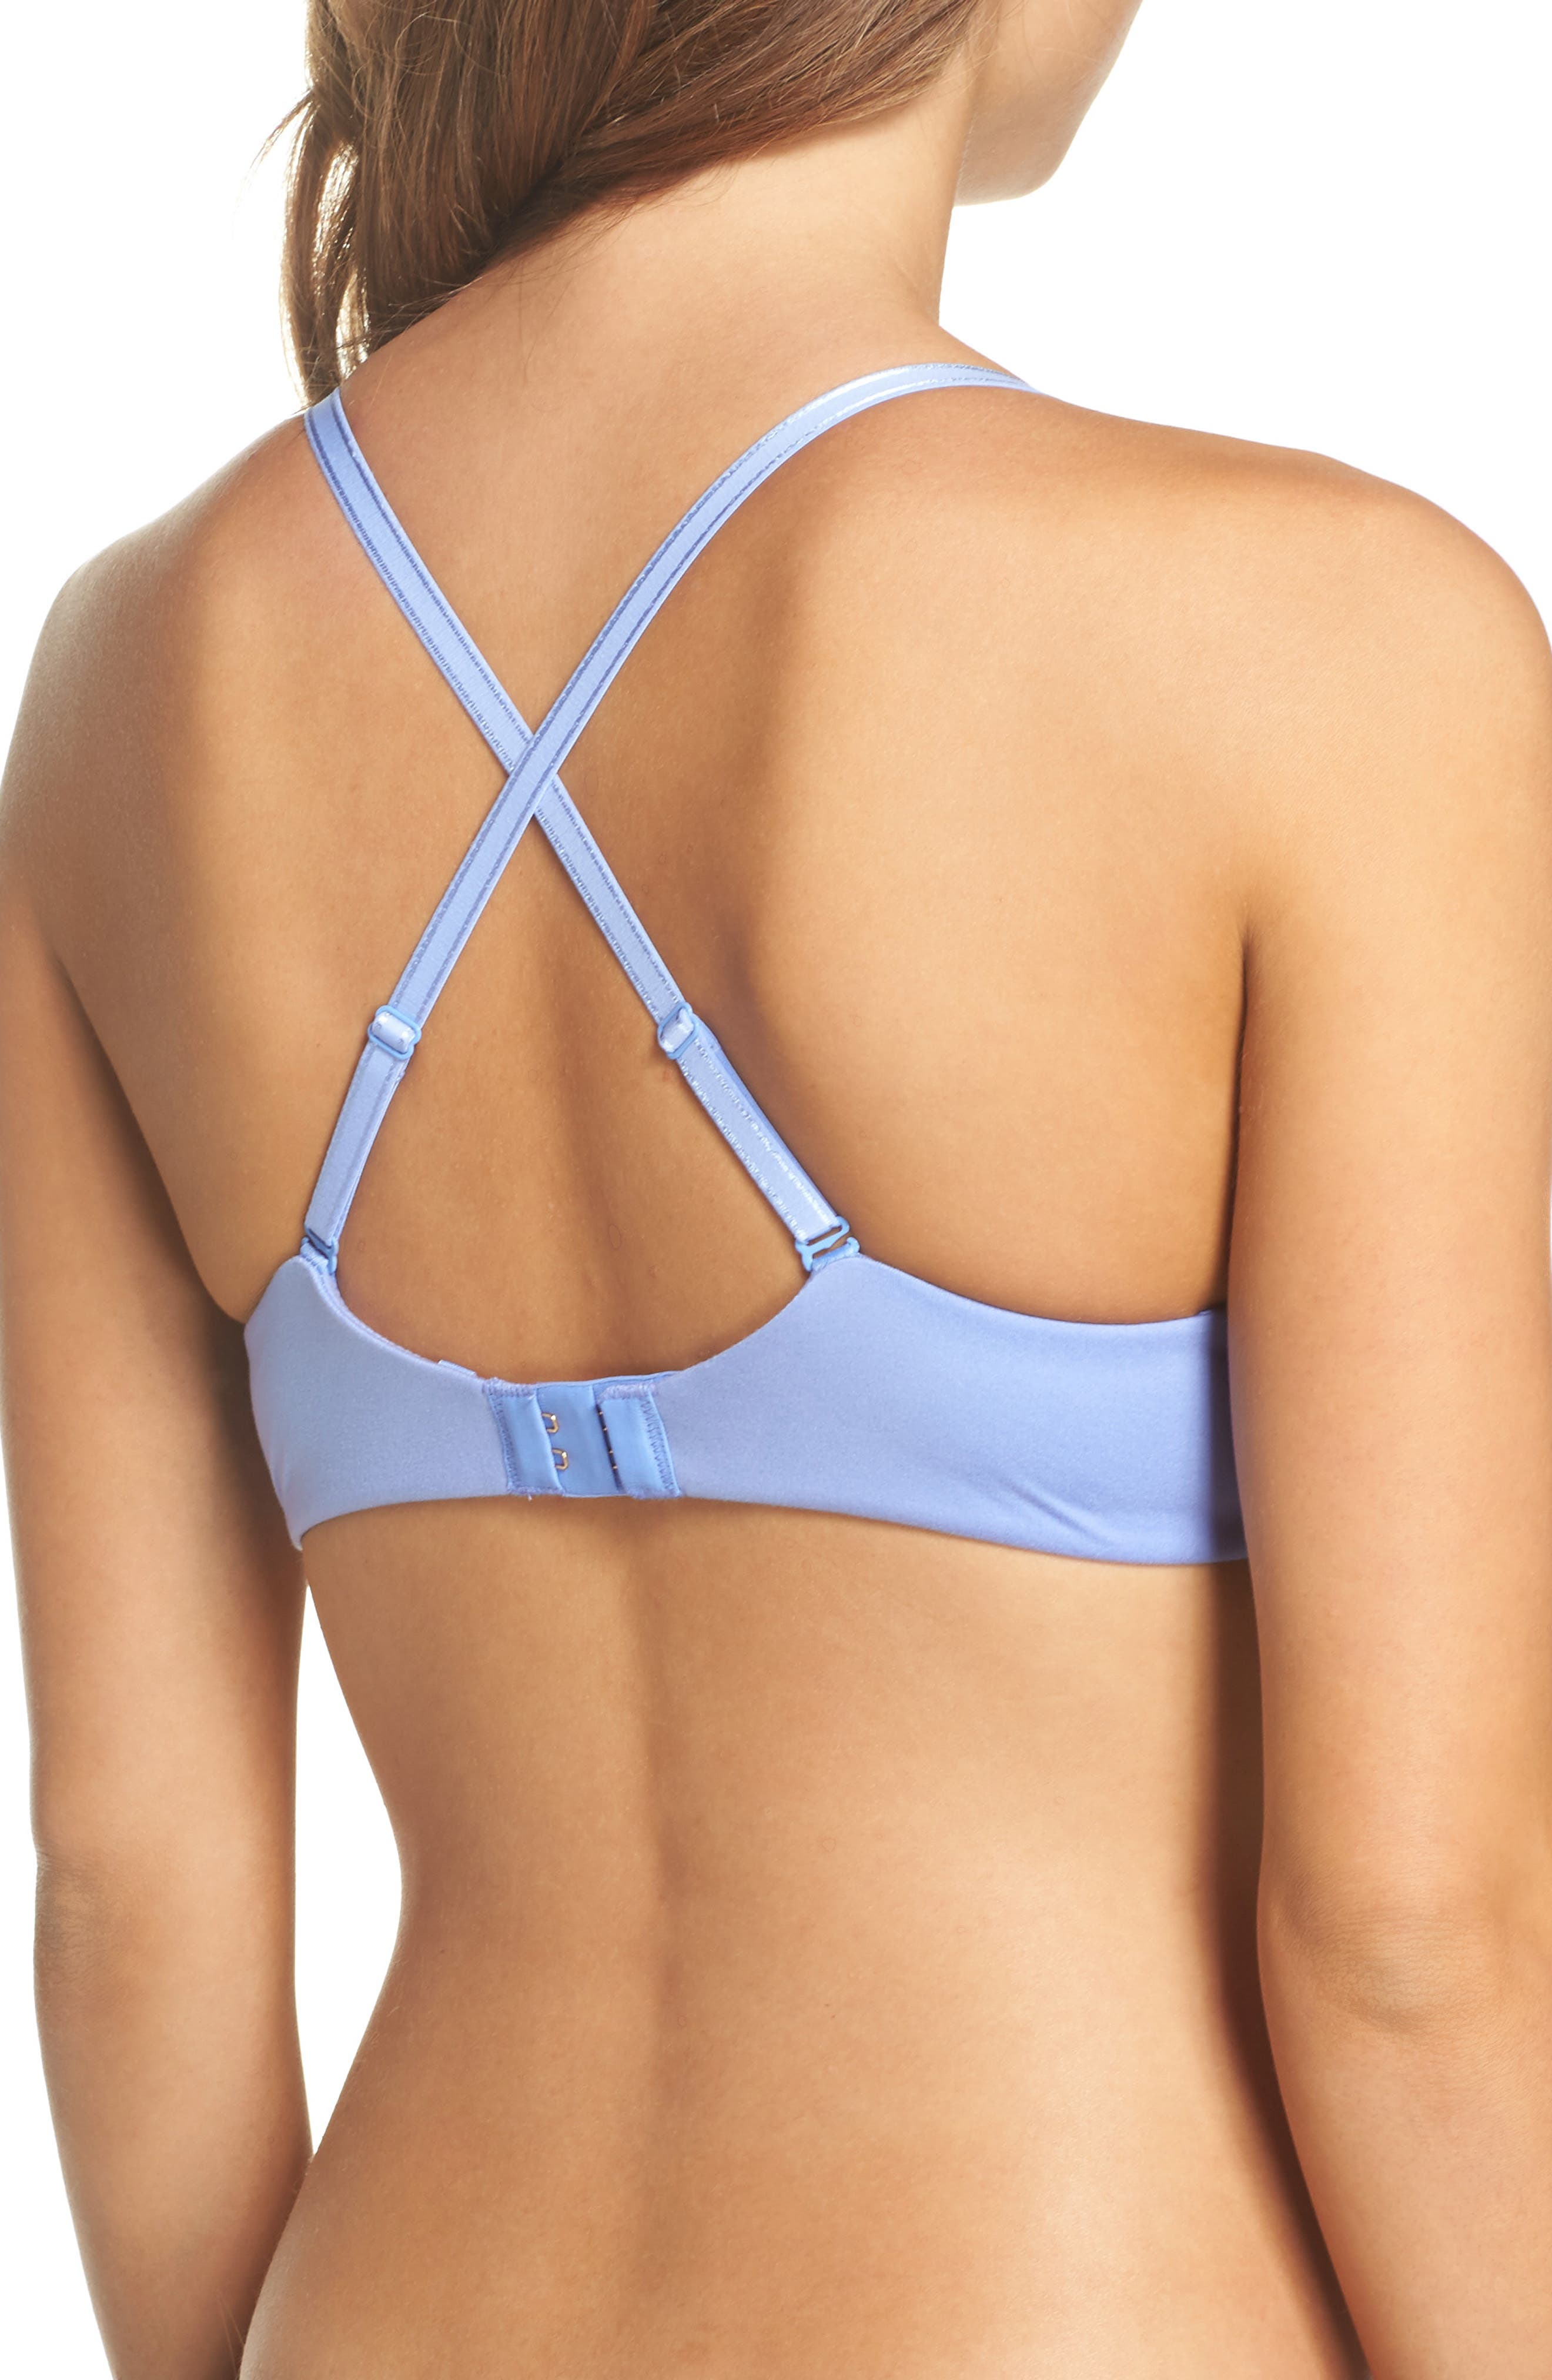 Alternate Image 3  - Betsey Johnson Forever Perfect Convertible Underwire Push-Up Bra